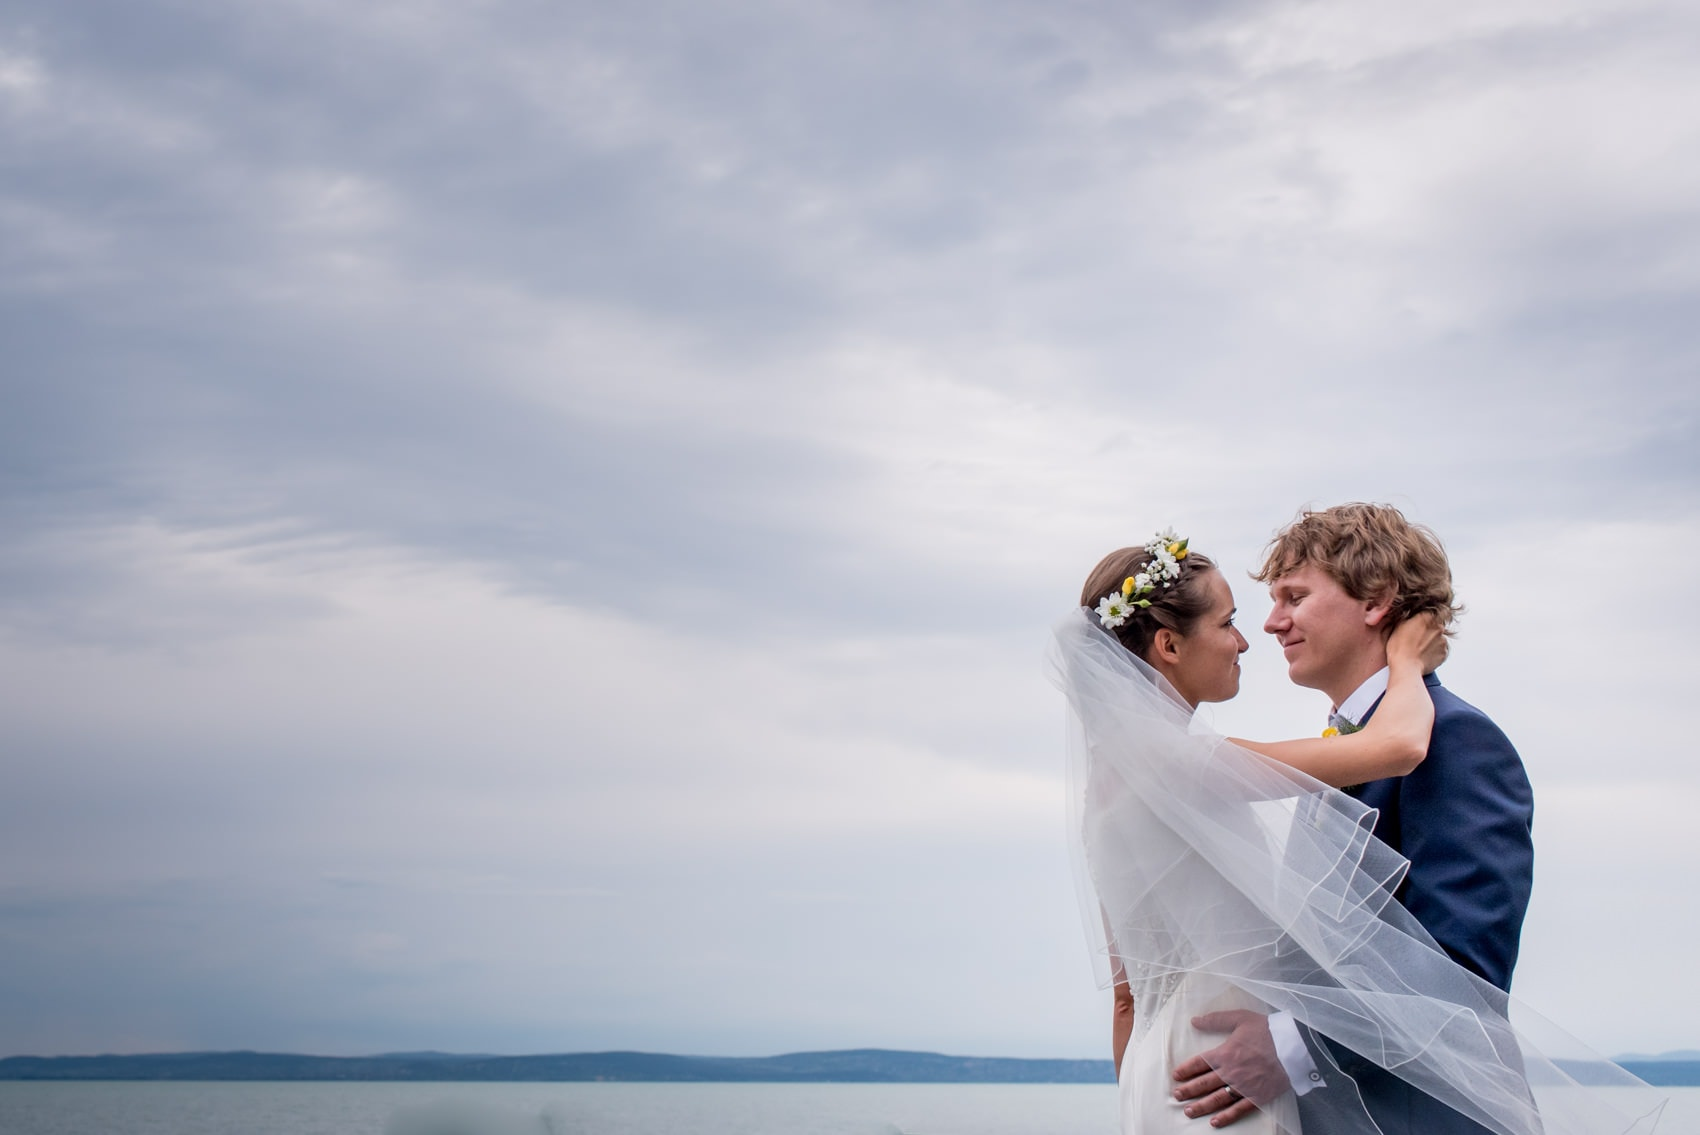 Hungarian bride and groom at their wedding on the shores of lake balaton